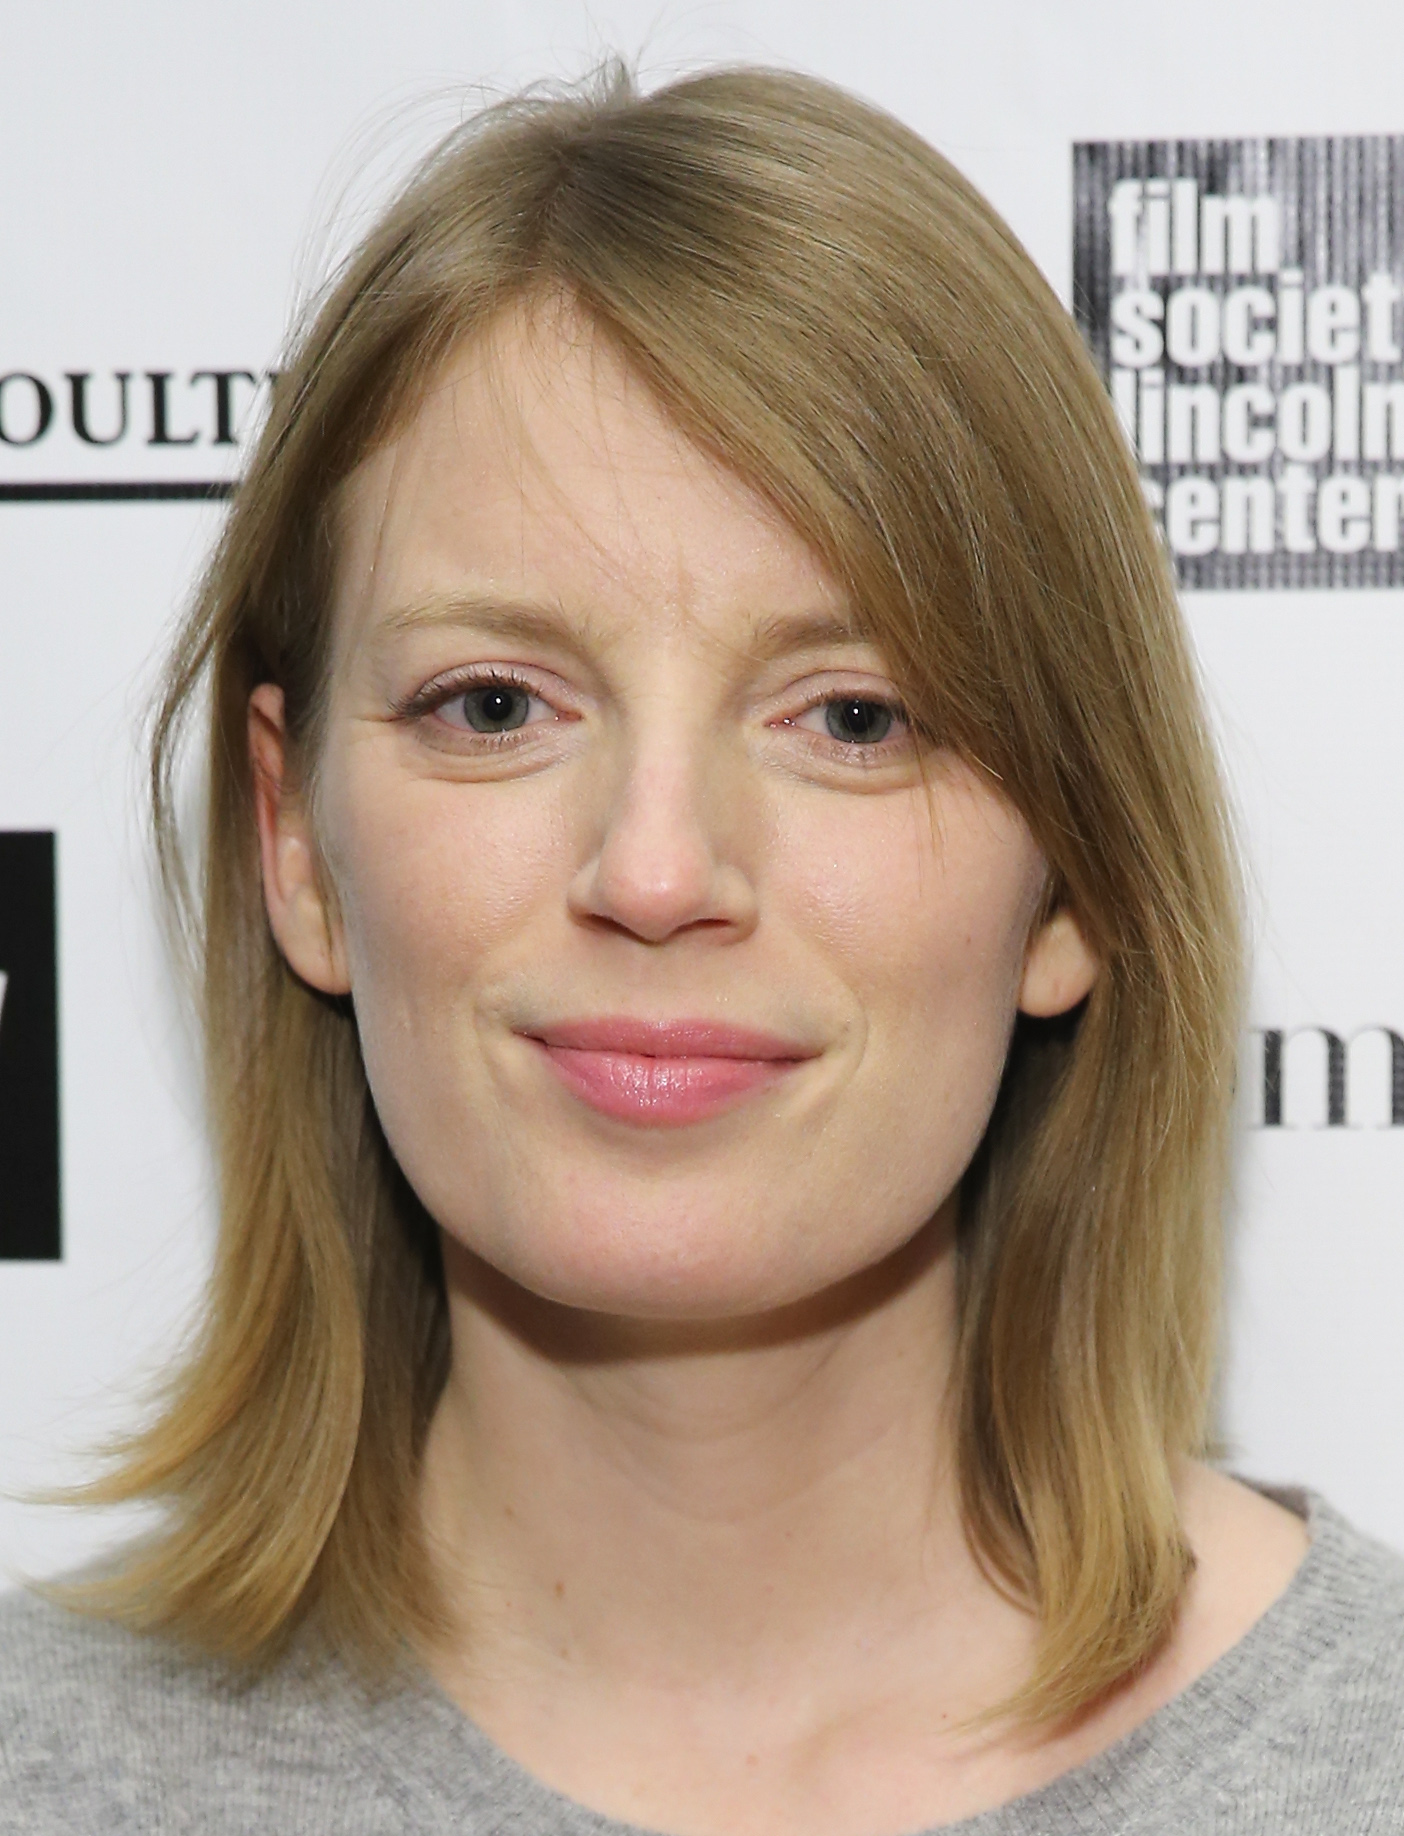 Actress Sarah Polley attends The Film Society of Lincoln Centers Film Comment Best Films of 2013 Luncheon presented by Jaeger-Lecoultre at The Lambs Club  on January 7, 2014 in New York City.